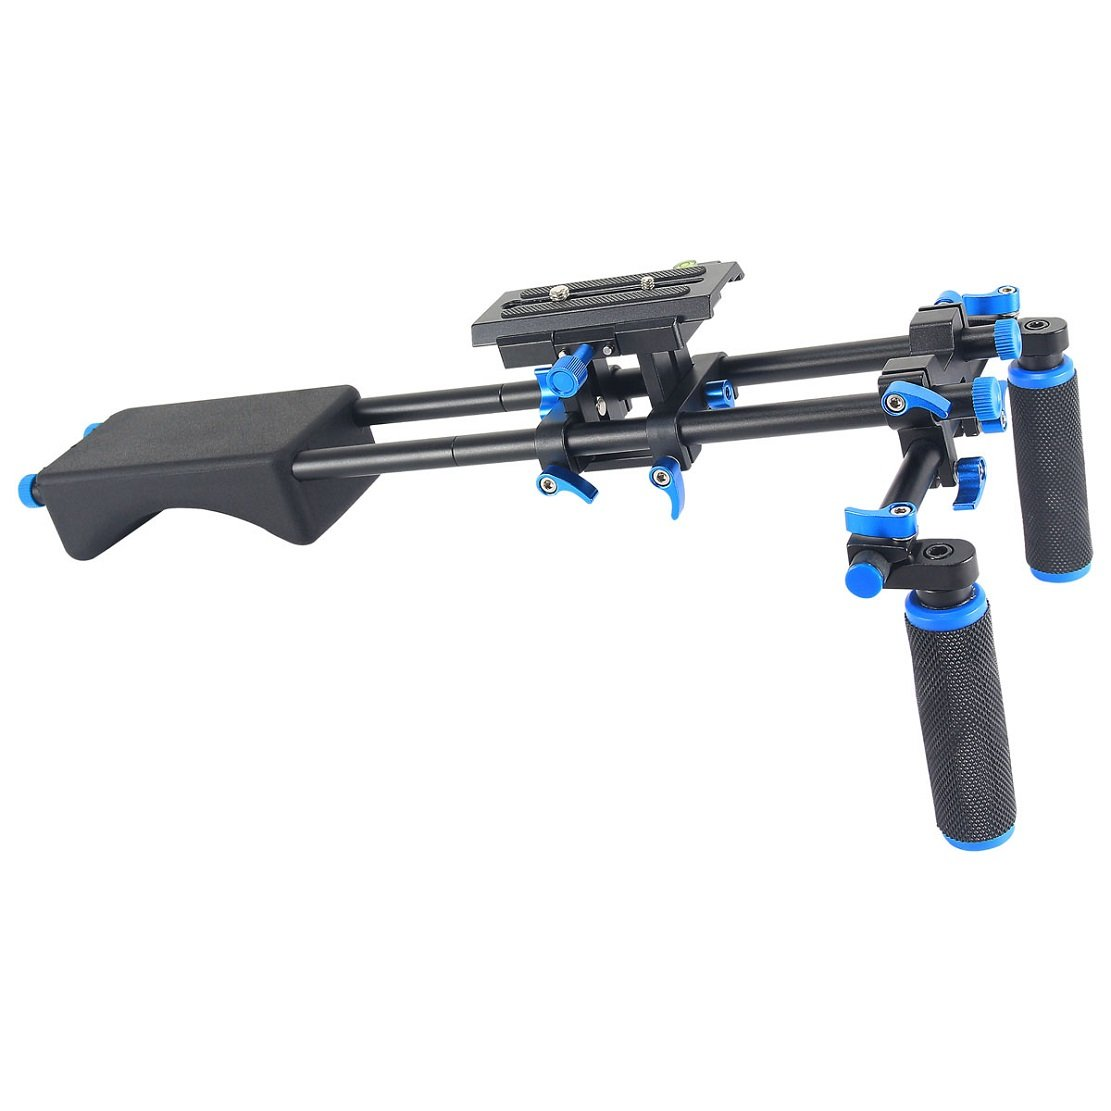 Annsm Video Shoulder Support Rig Stabilizer Slider for Long Time Video Shooting for DSLR Camera/Camcorder Such as Sony Nikon Canon with Soft Rubber Dual Hand Handgrips and Rubber Shoulder Pad